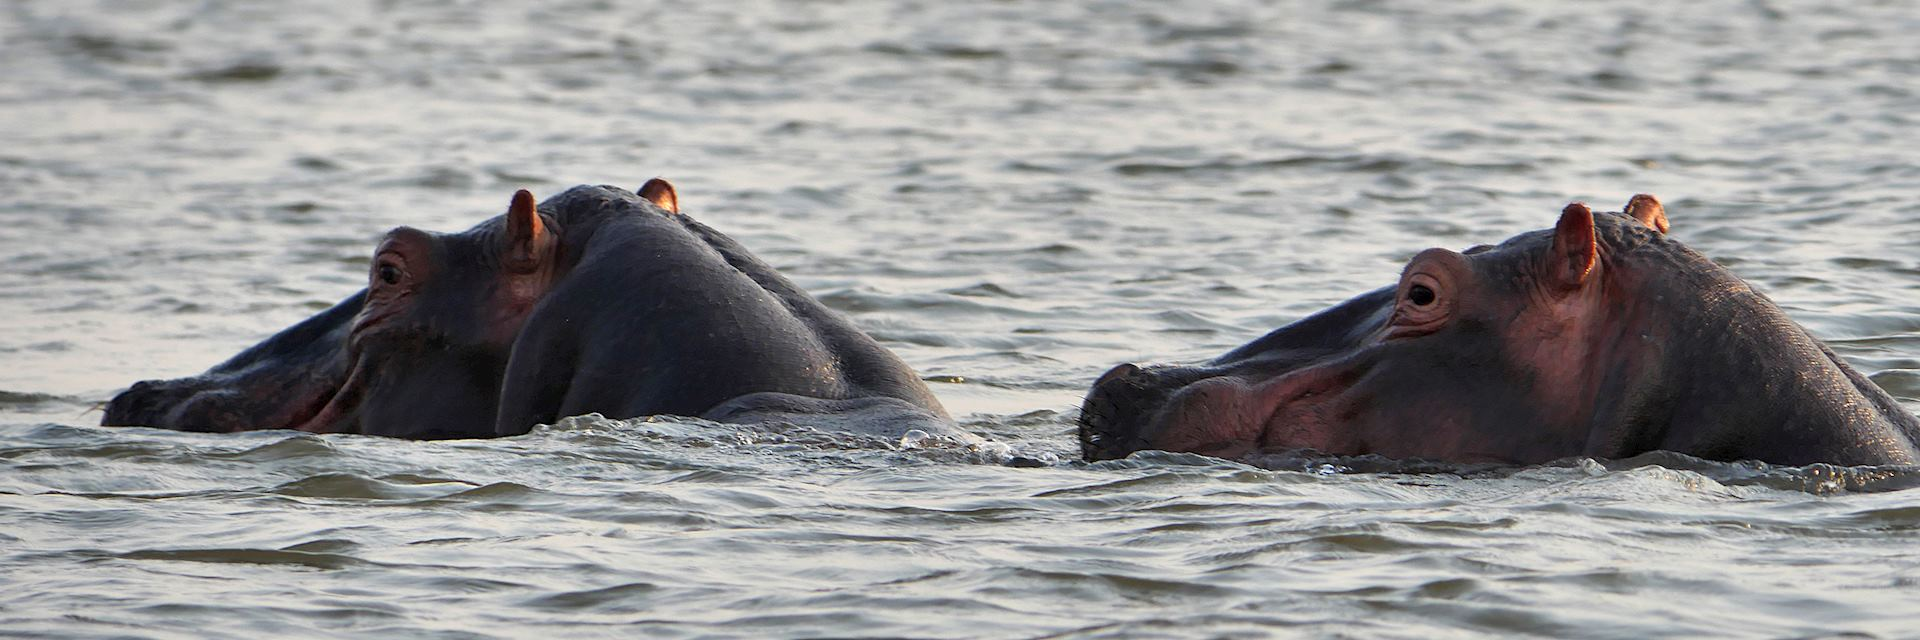 Hippos in Liwonde National Park, Malawi